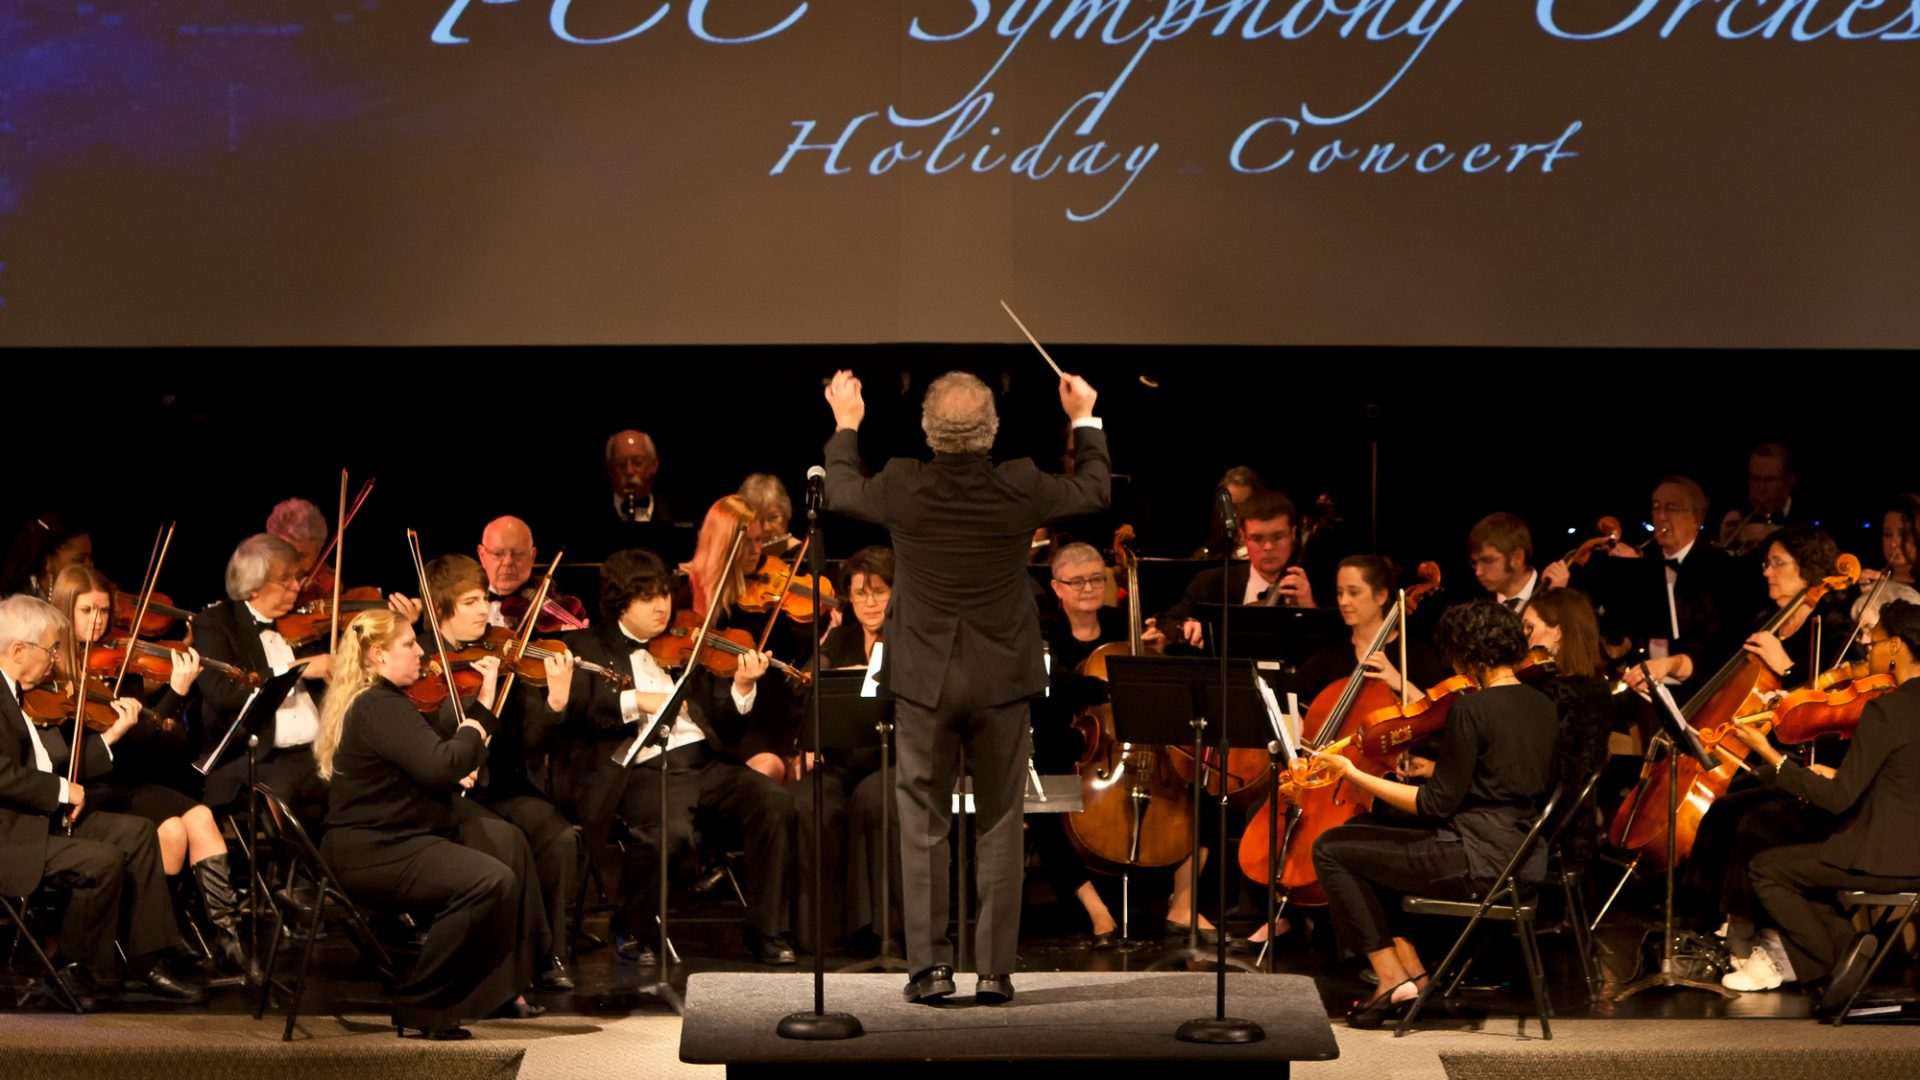 Led my PCC's Michael Stephenson, the PCC Symphony Orchestra performs music during its annual holiday concert.